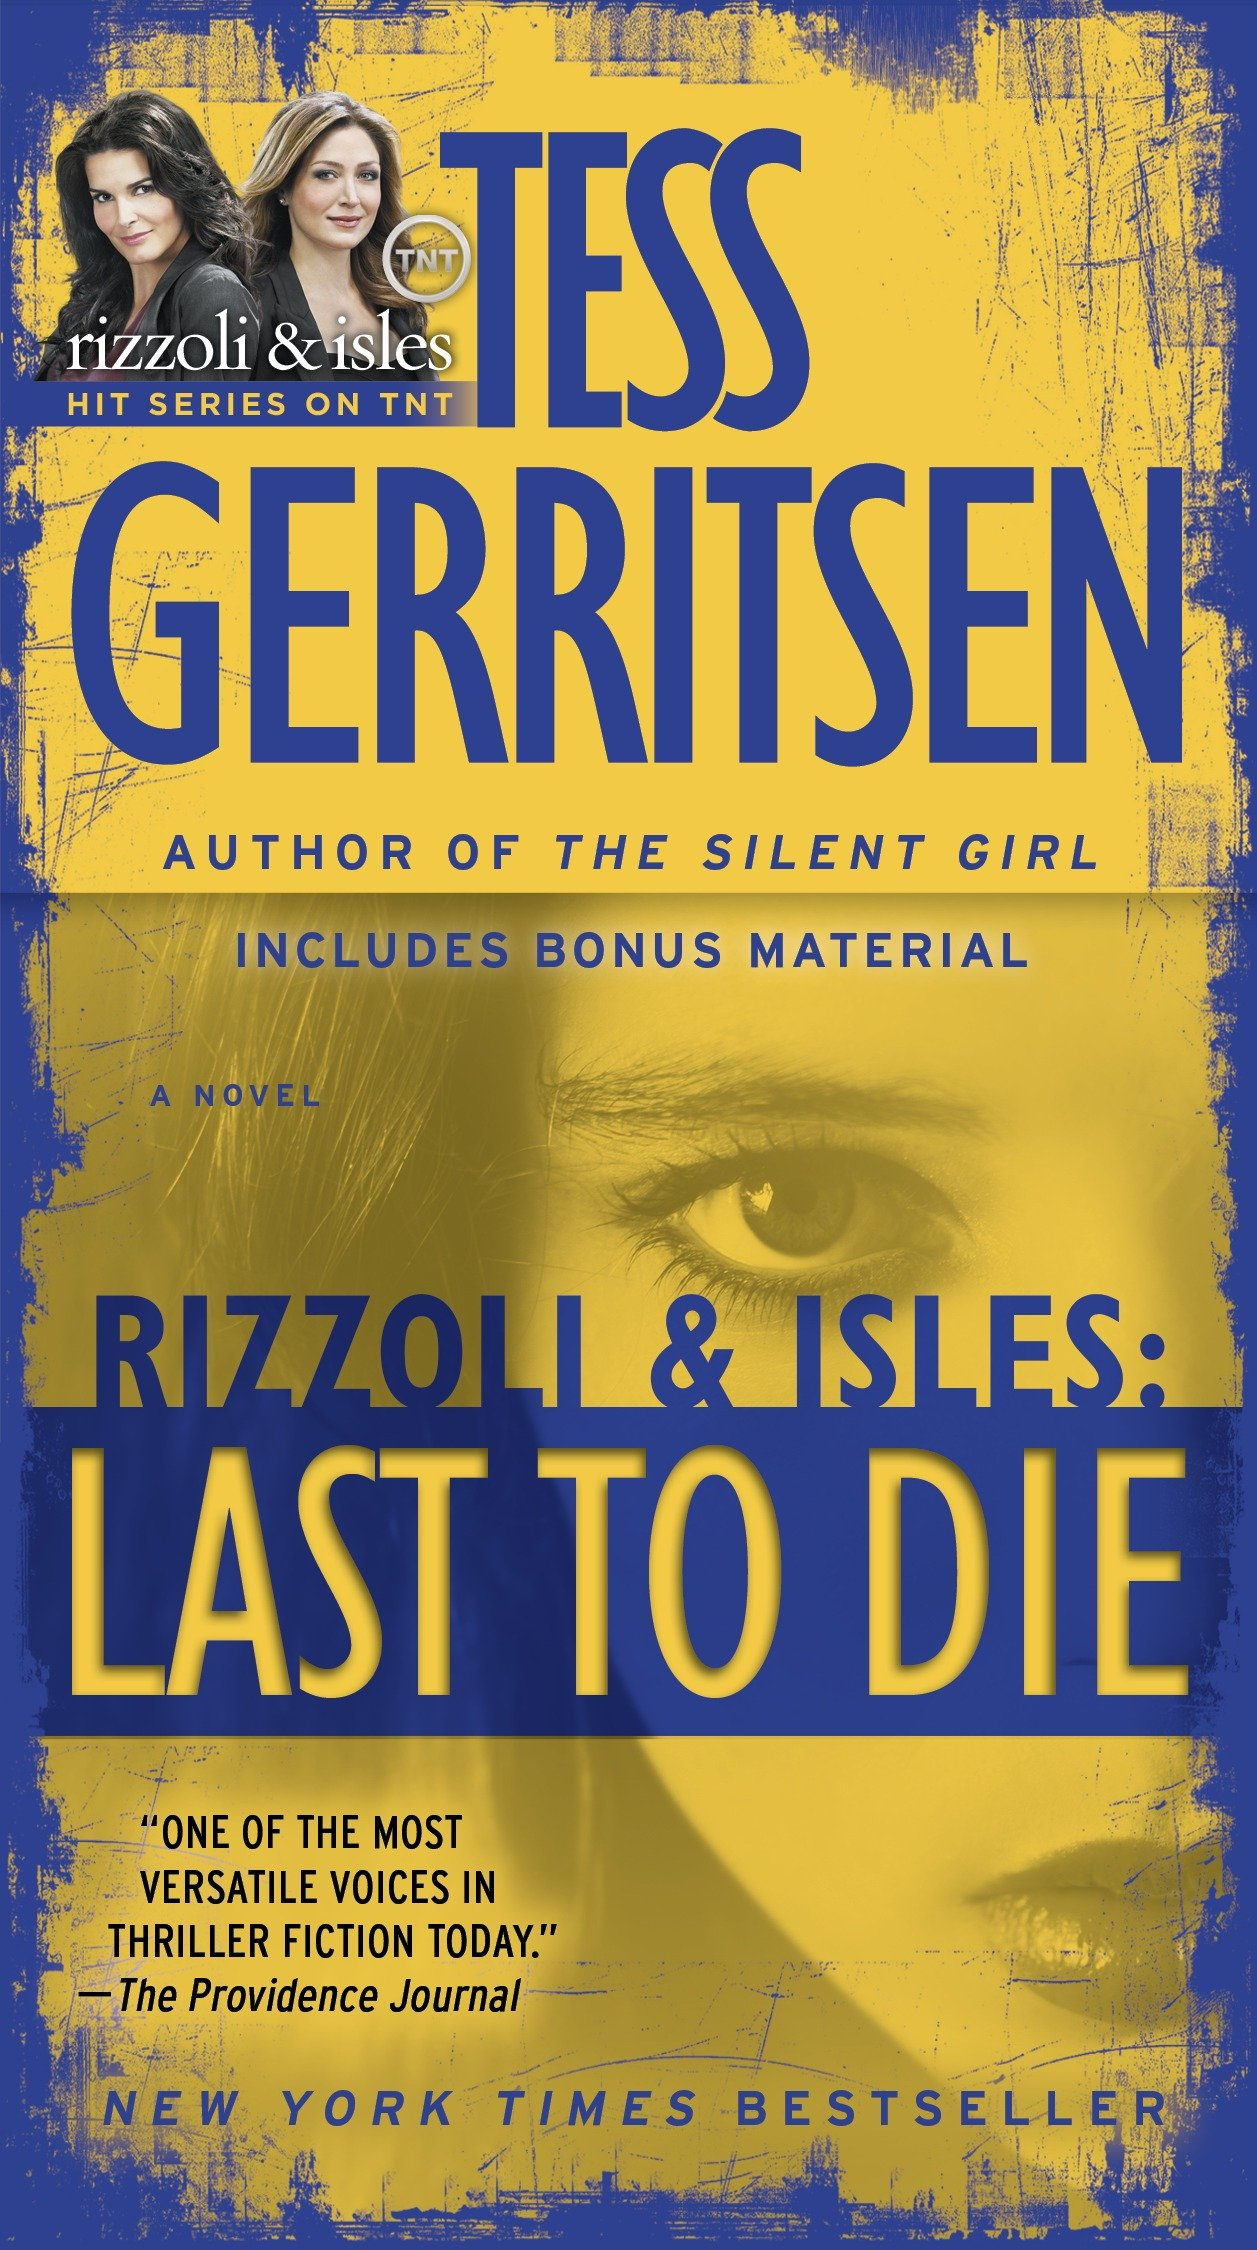 Last to die: A Rizzoli & Isles Novel cover image